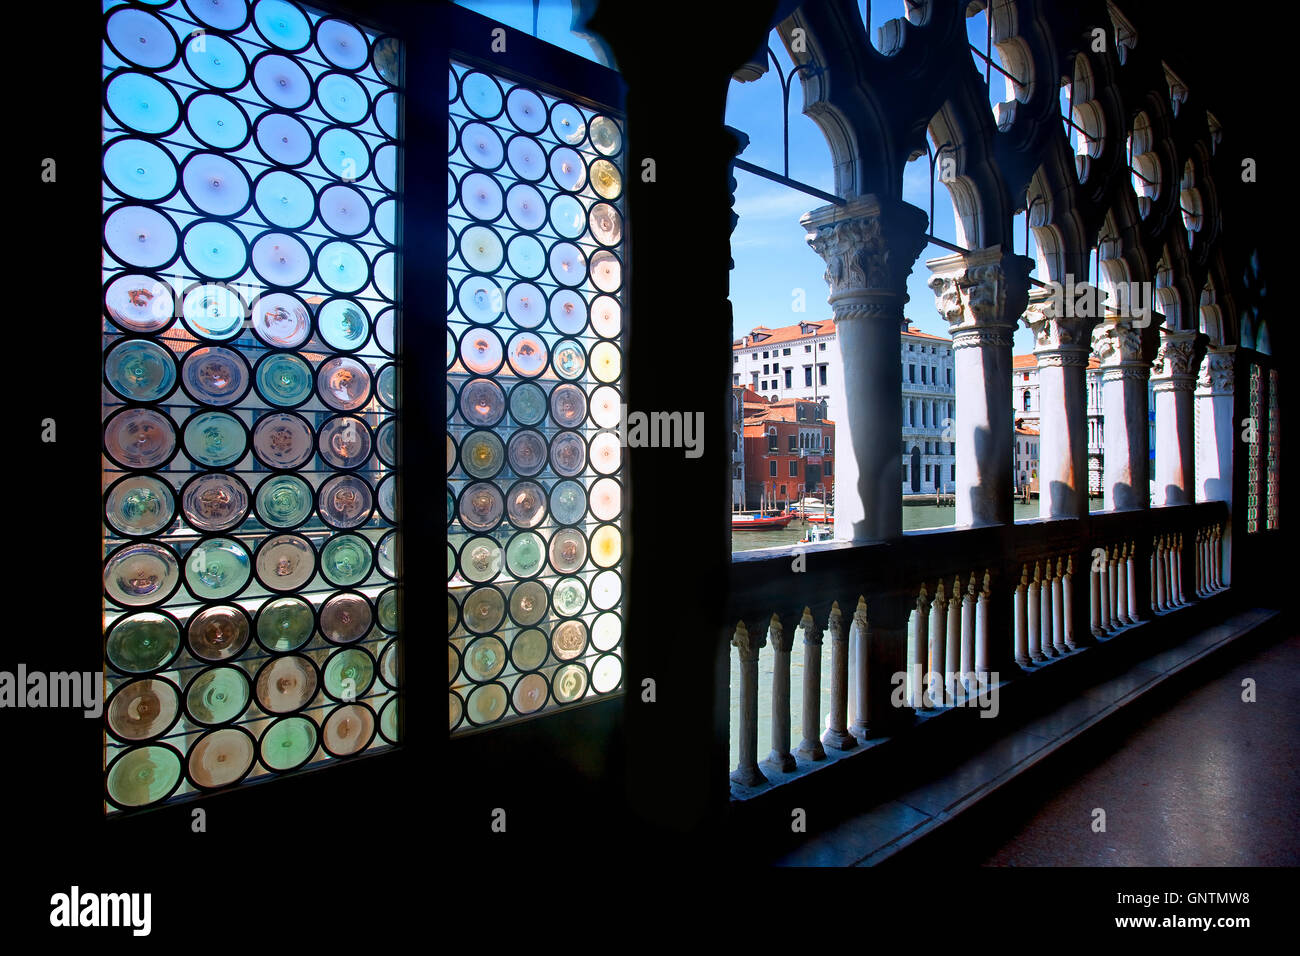 Interior of Ca' d'Oro palace, Venice - Stock Image